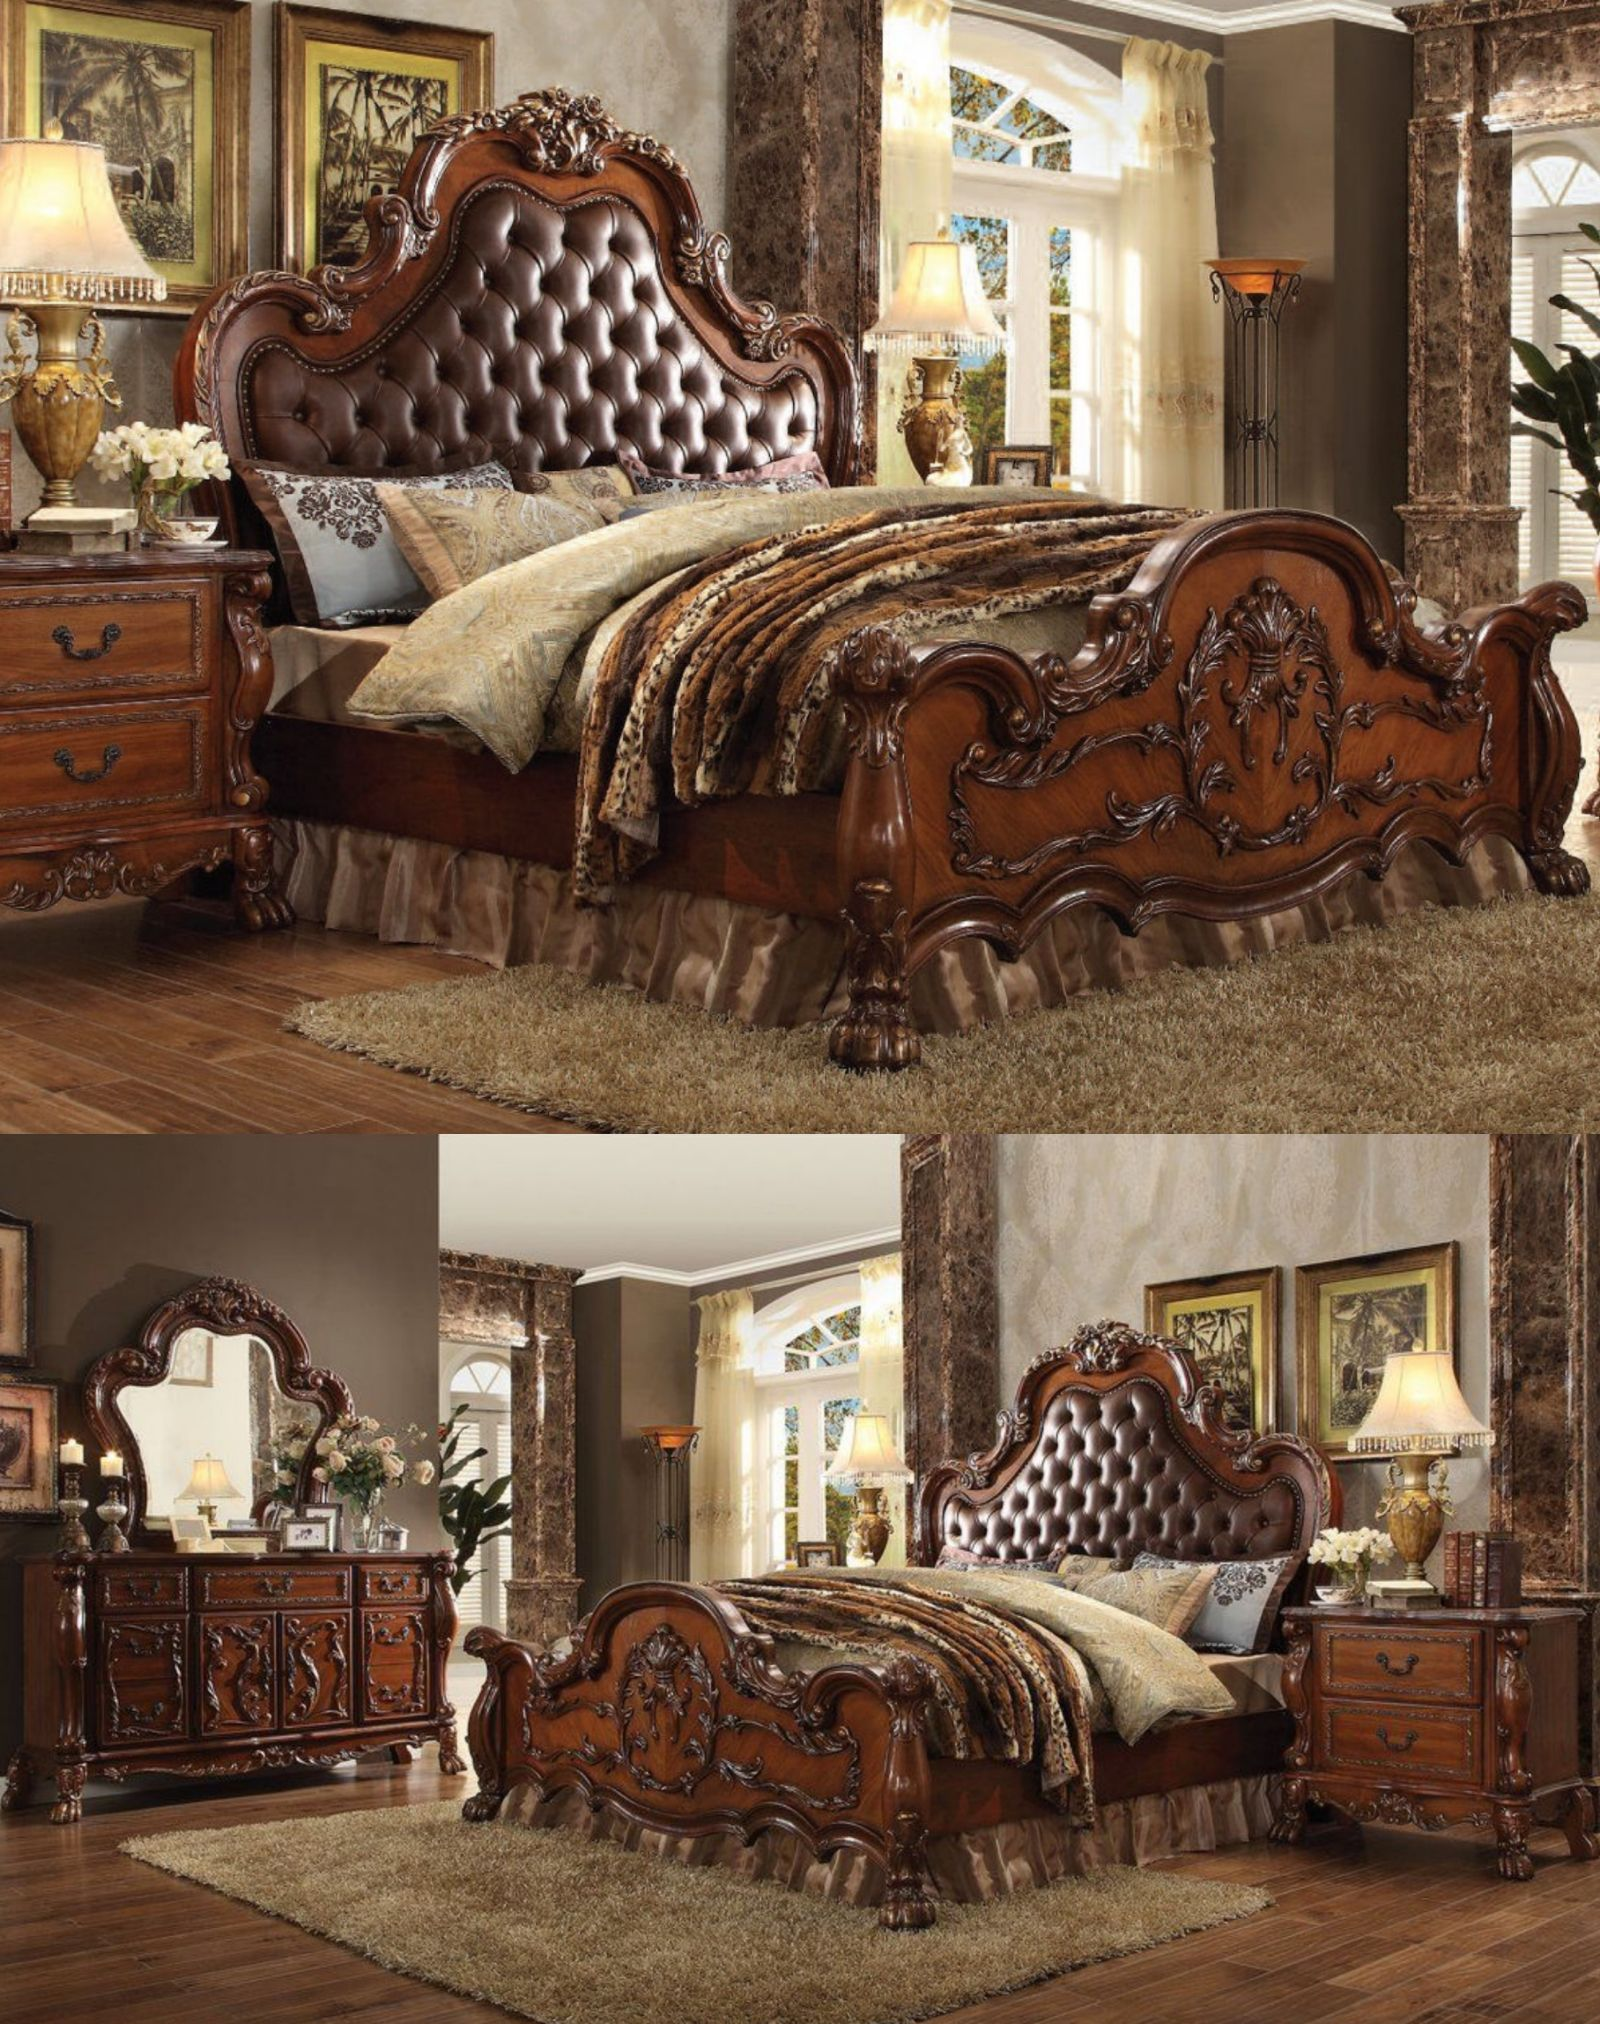 Antique cherry oak tufted headboard bedroom furniture set queen size